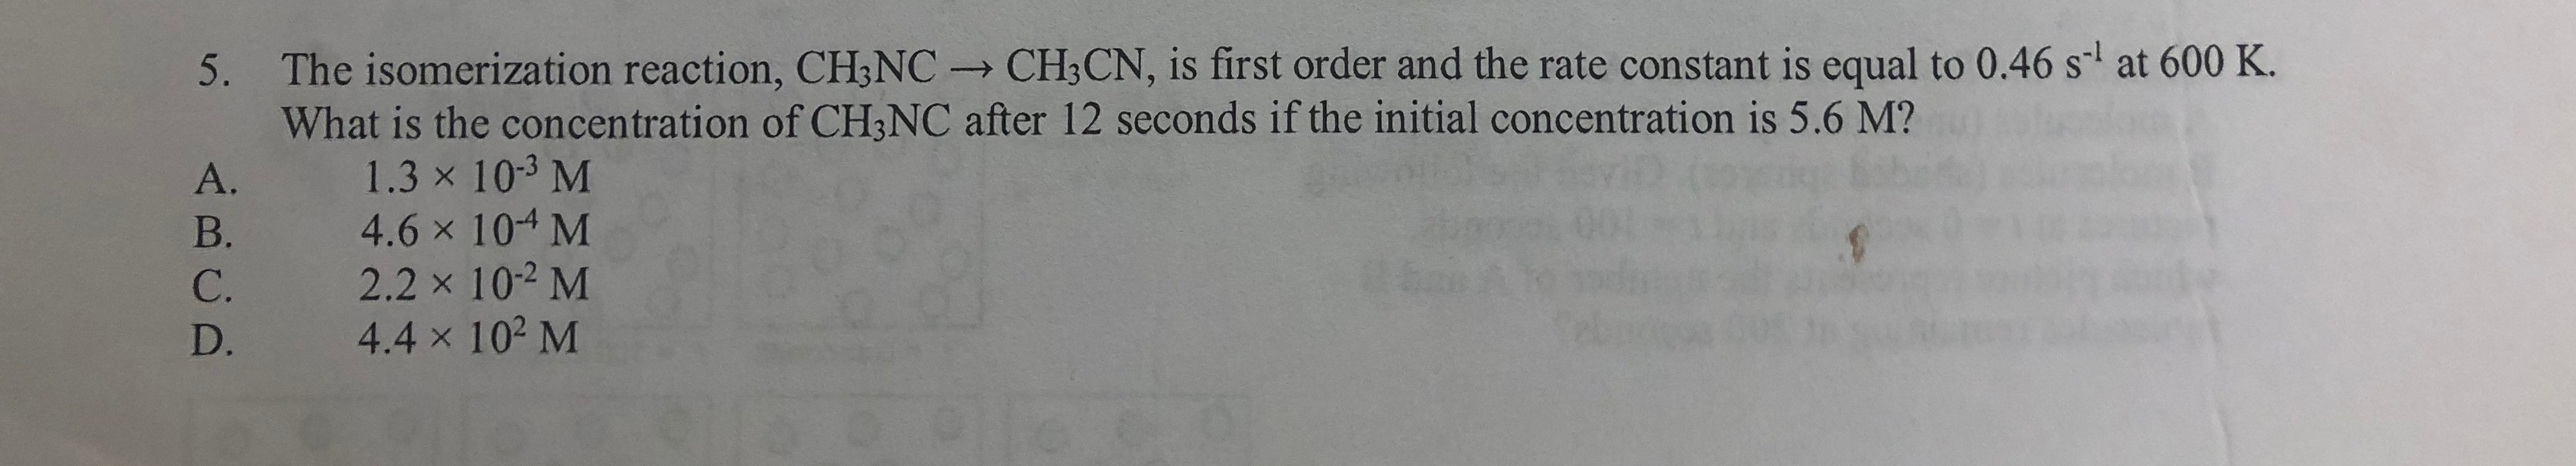 5. The isomerization reaction, CH;NC CH;CN, is first order and the rate constant is equal to 0.46 s at 600 K. What is the concentration of CH;NC after 12 seconds if the initial concentration is 5.6 M? 1.3 x 10-3 M 4.6 x 104 M 2.2 x 10-2 M 4.4 x 102 M A. B. C. D.